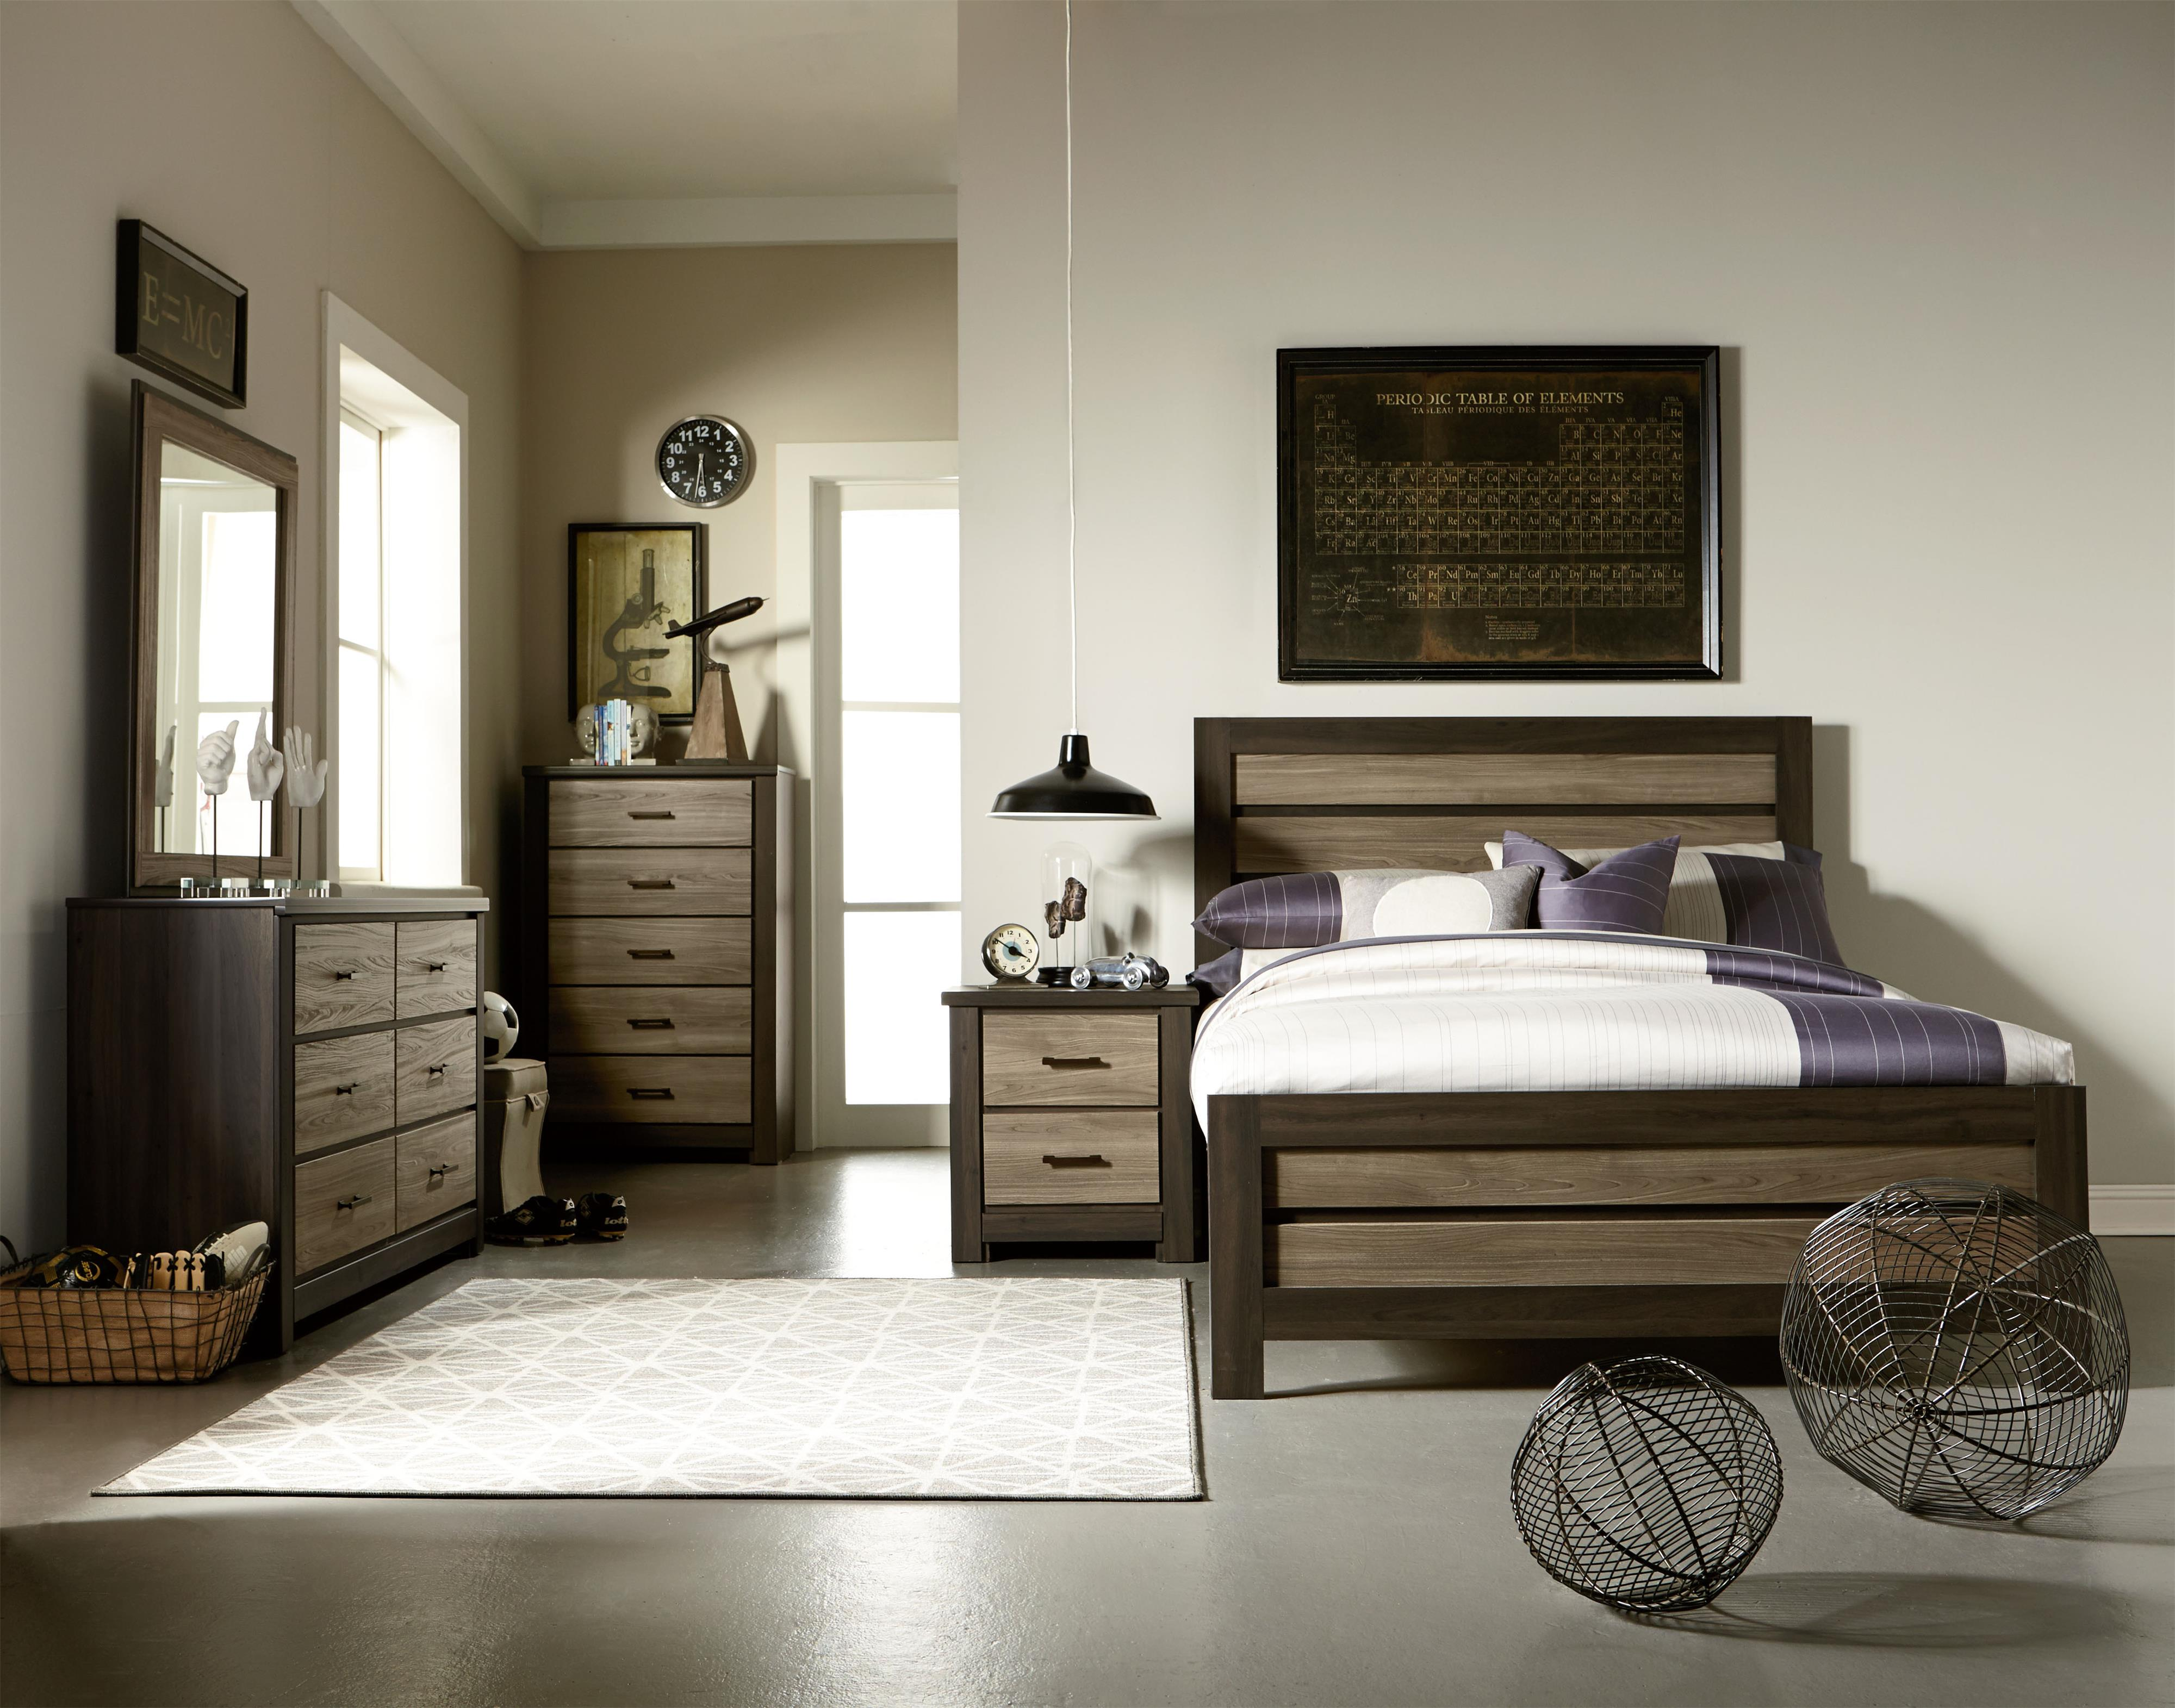 Standard Furniture Oakland Twin Bedroom Group - Item Number: 69700 T Bedroom Group 2